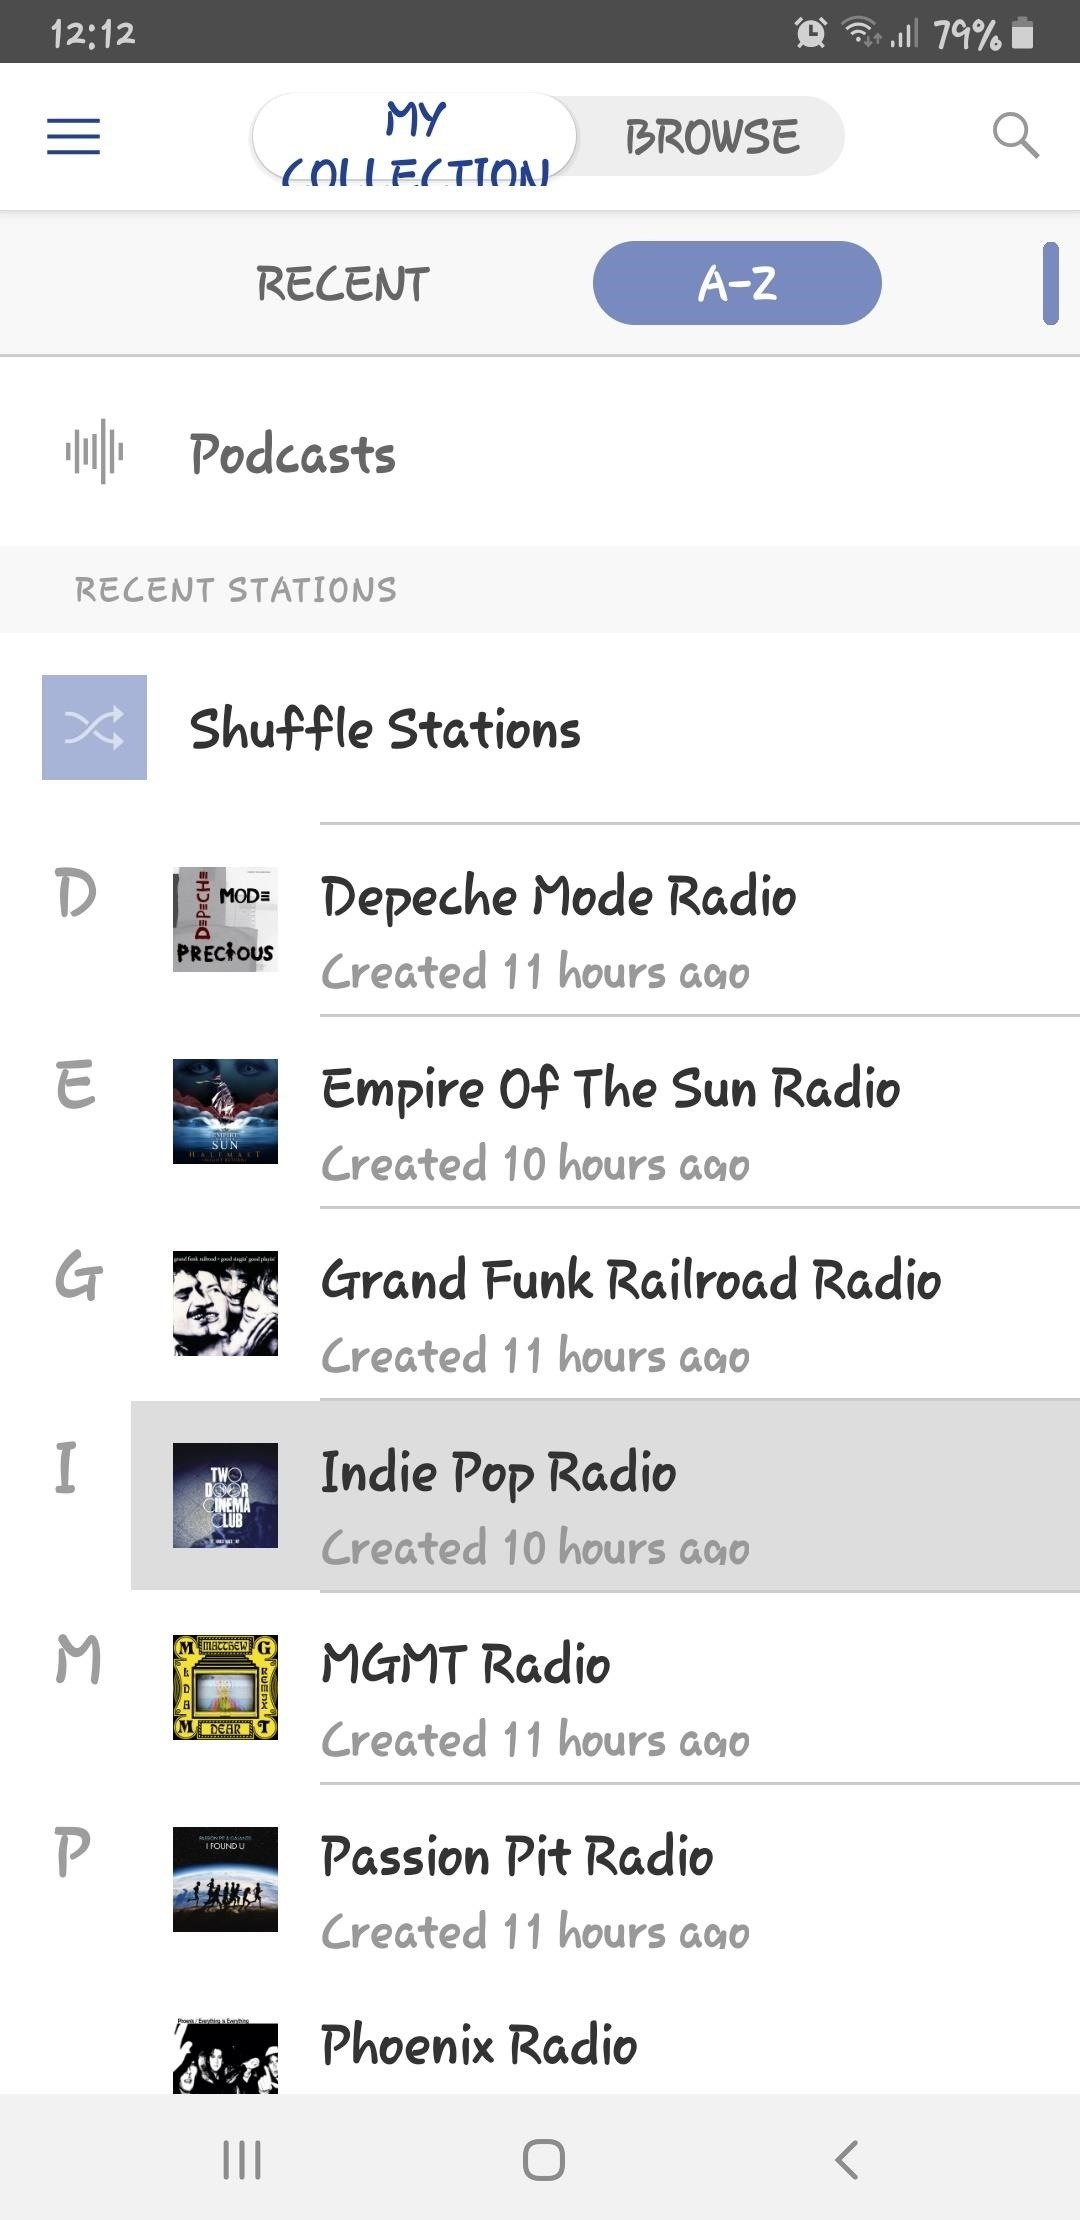 How to Delete Stations You No Longer Listen to on Pandora